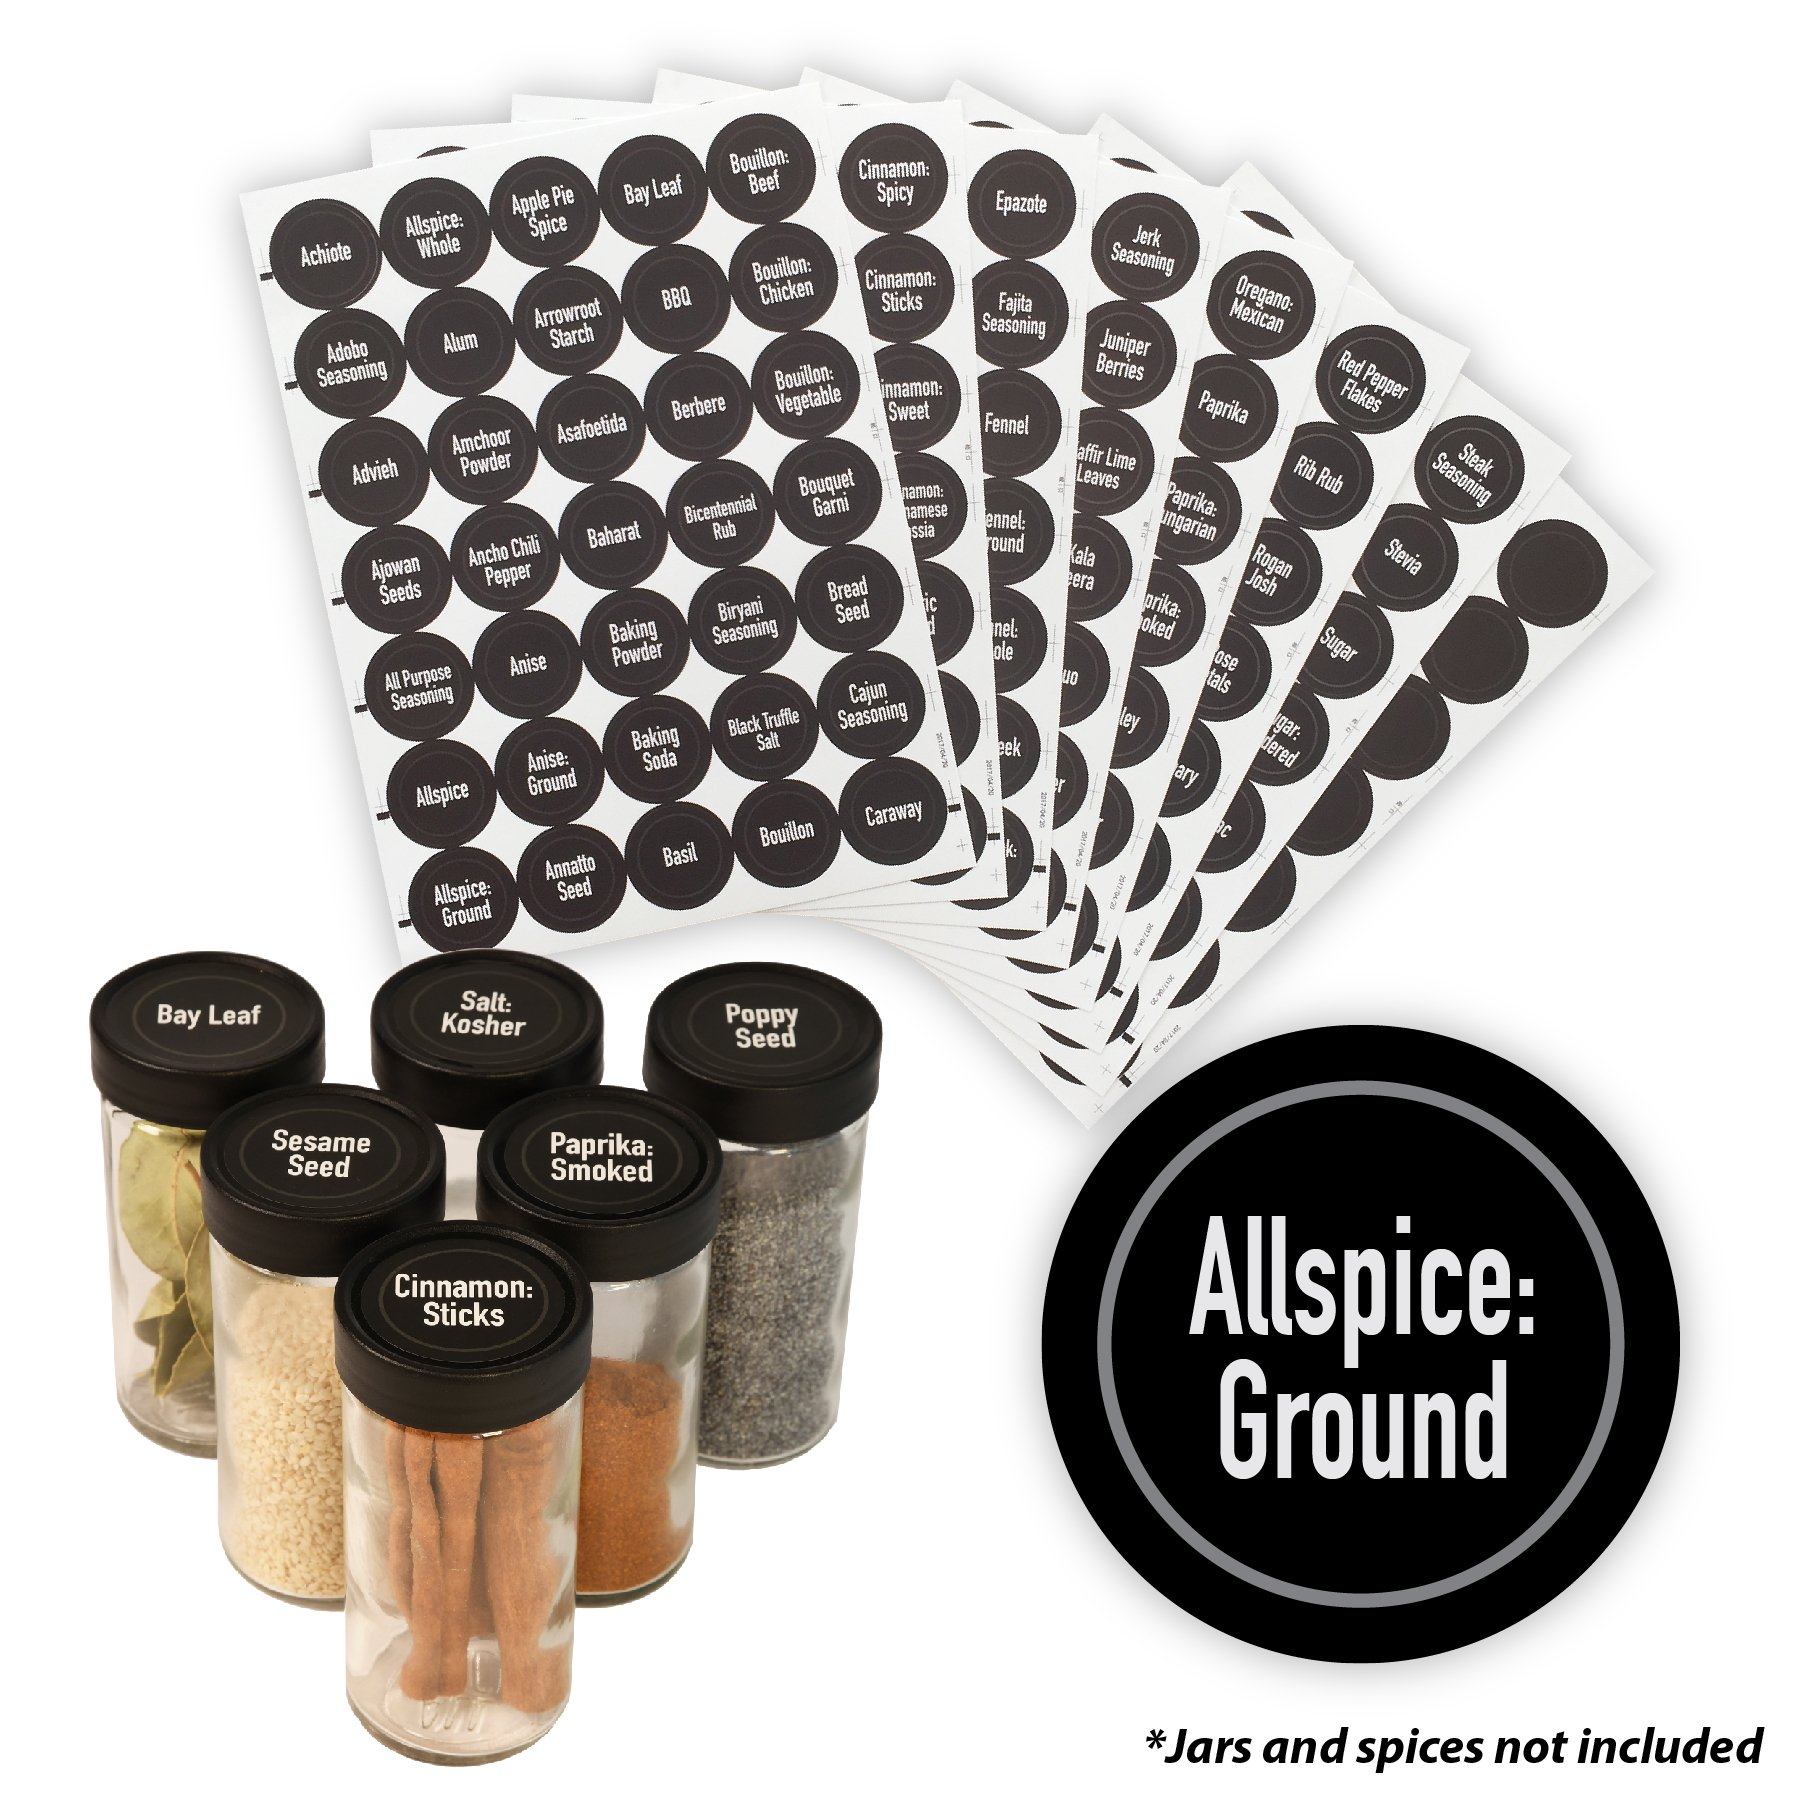 AllSpice 315 Preprinted Water Resistant Round Spice Jar Labels Set 1.5''- Fits Penzeys and AllSpice Jars- 4 styles to choose from (Modern Black)